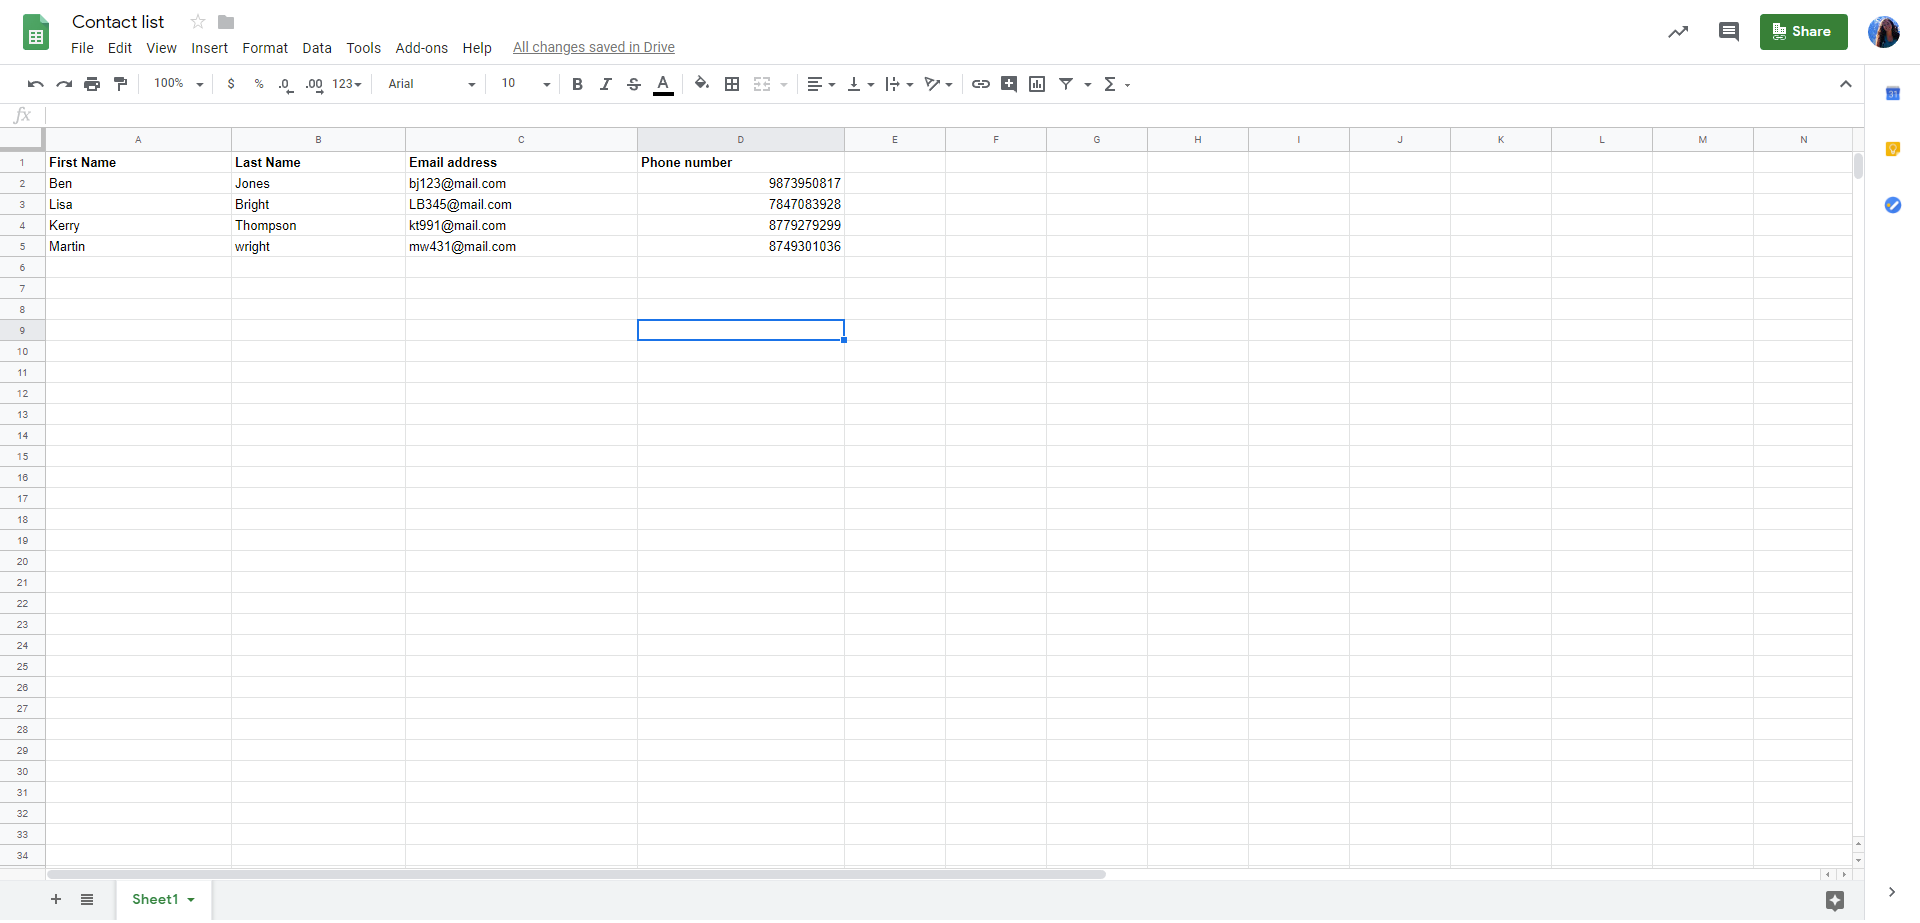 Creat a google spreadsheet for your list of contacts.